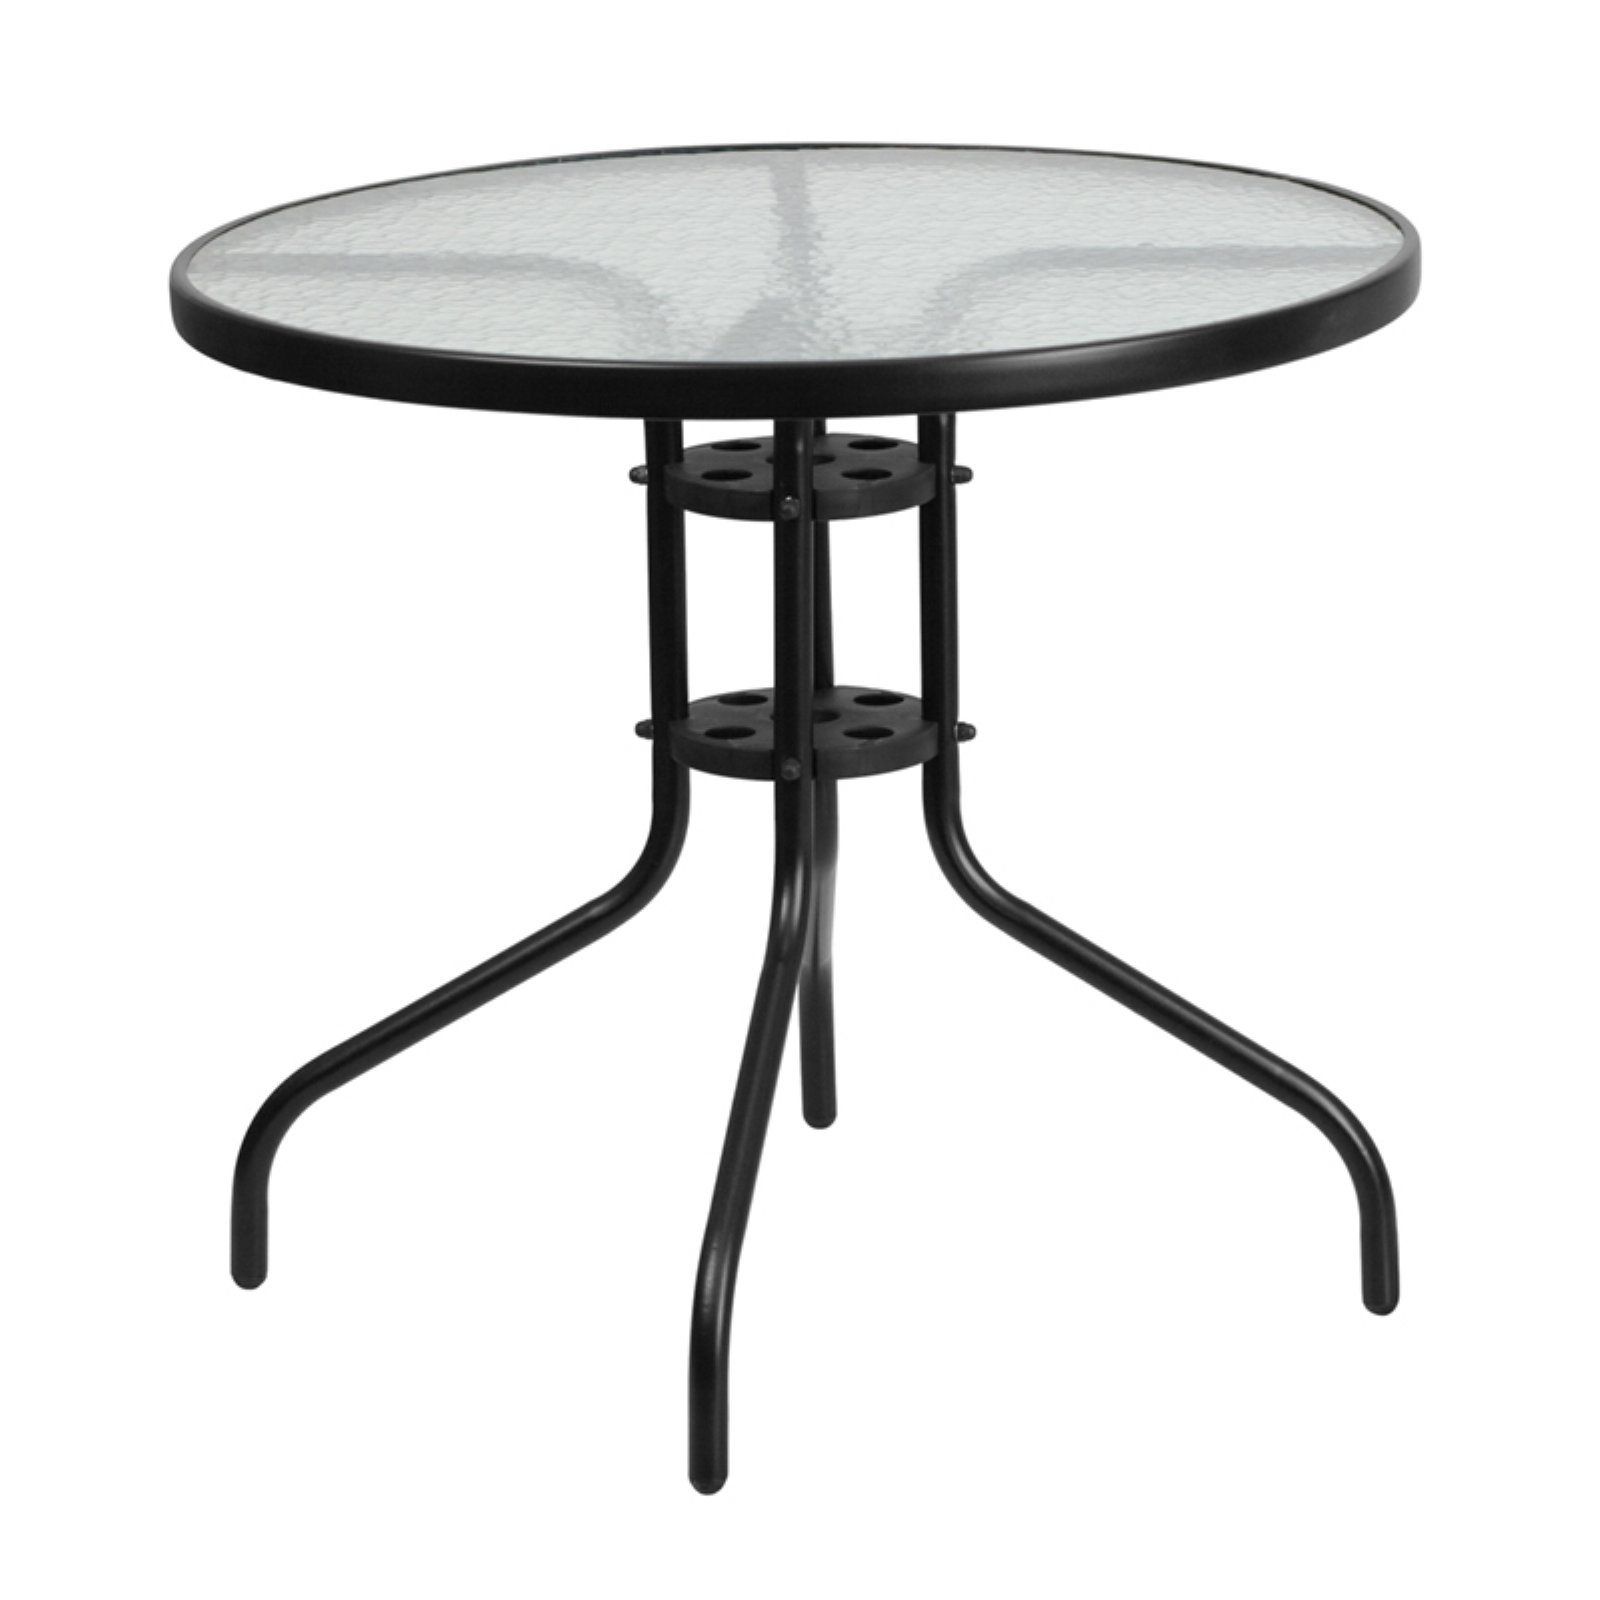 flash furniture round tempered glass metal table room essentials patio accent home hardware sets mustard rug rechargeable battery powered lamps small couch canadian tire outdoor